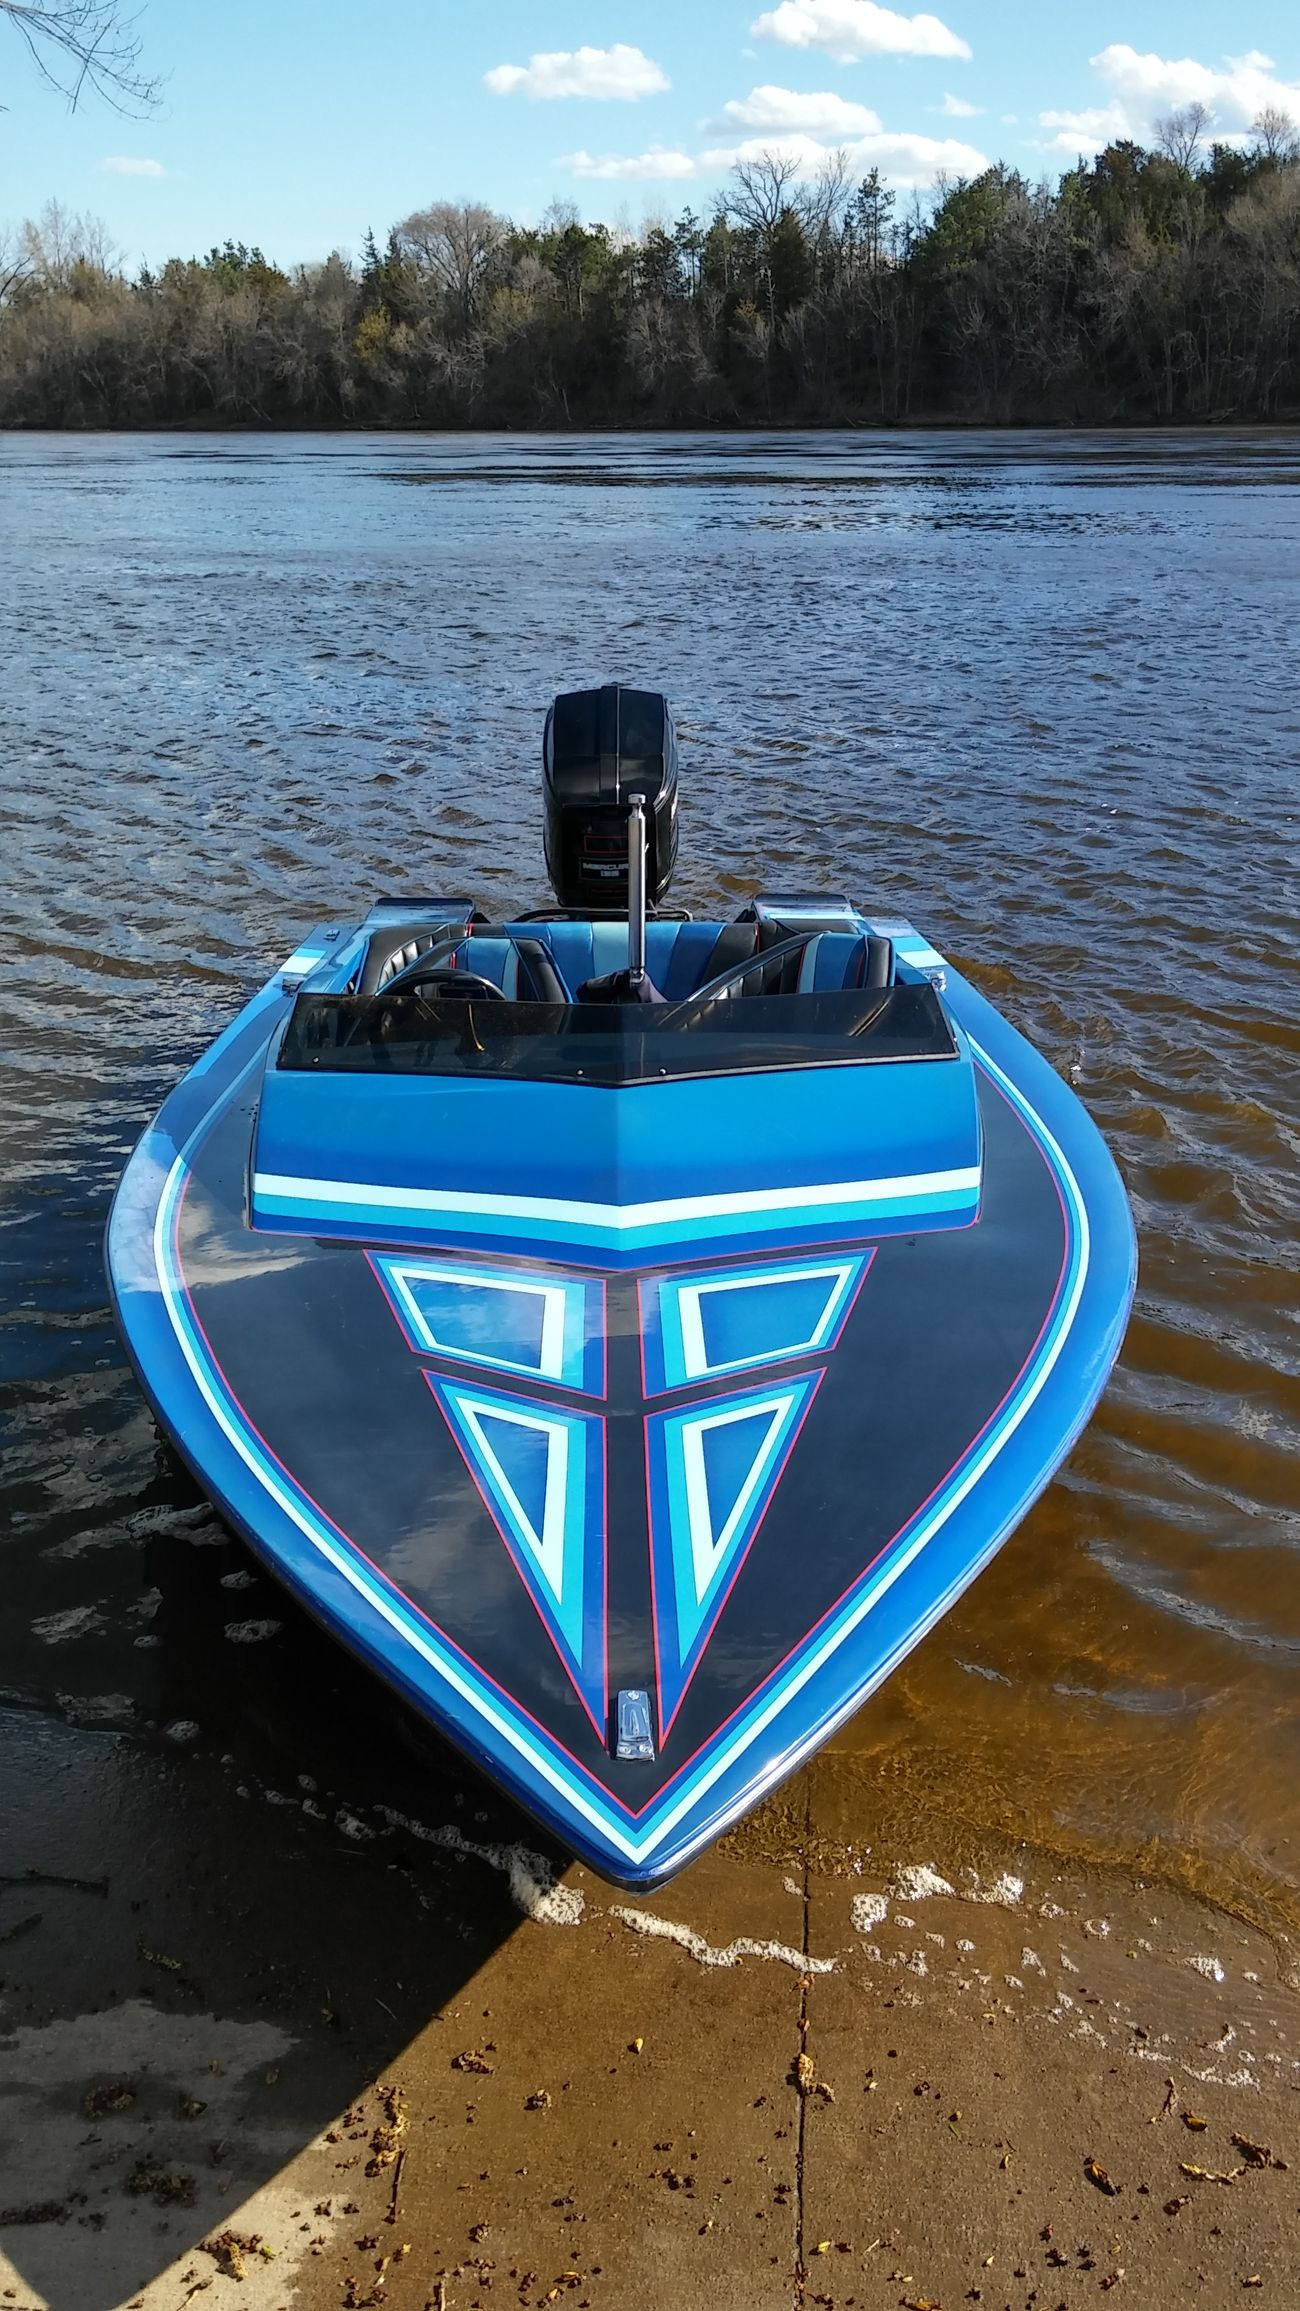 Water Taking Photos My Point Of View Check This Out Boys And There Toys Multi Colored My Boat On The River Capture The Moment Minnesotalife Outdoors Mode Of Transport Nautical Vessel Mississippi River Close-up